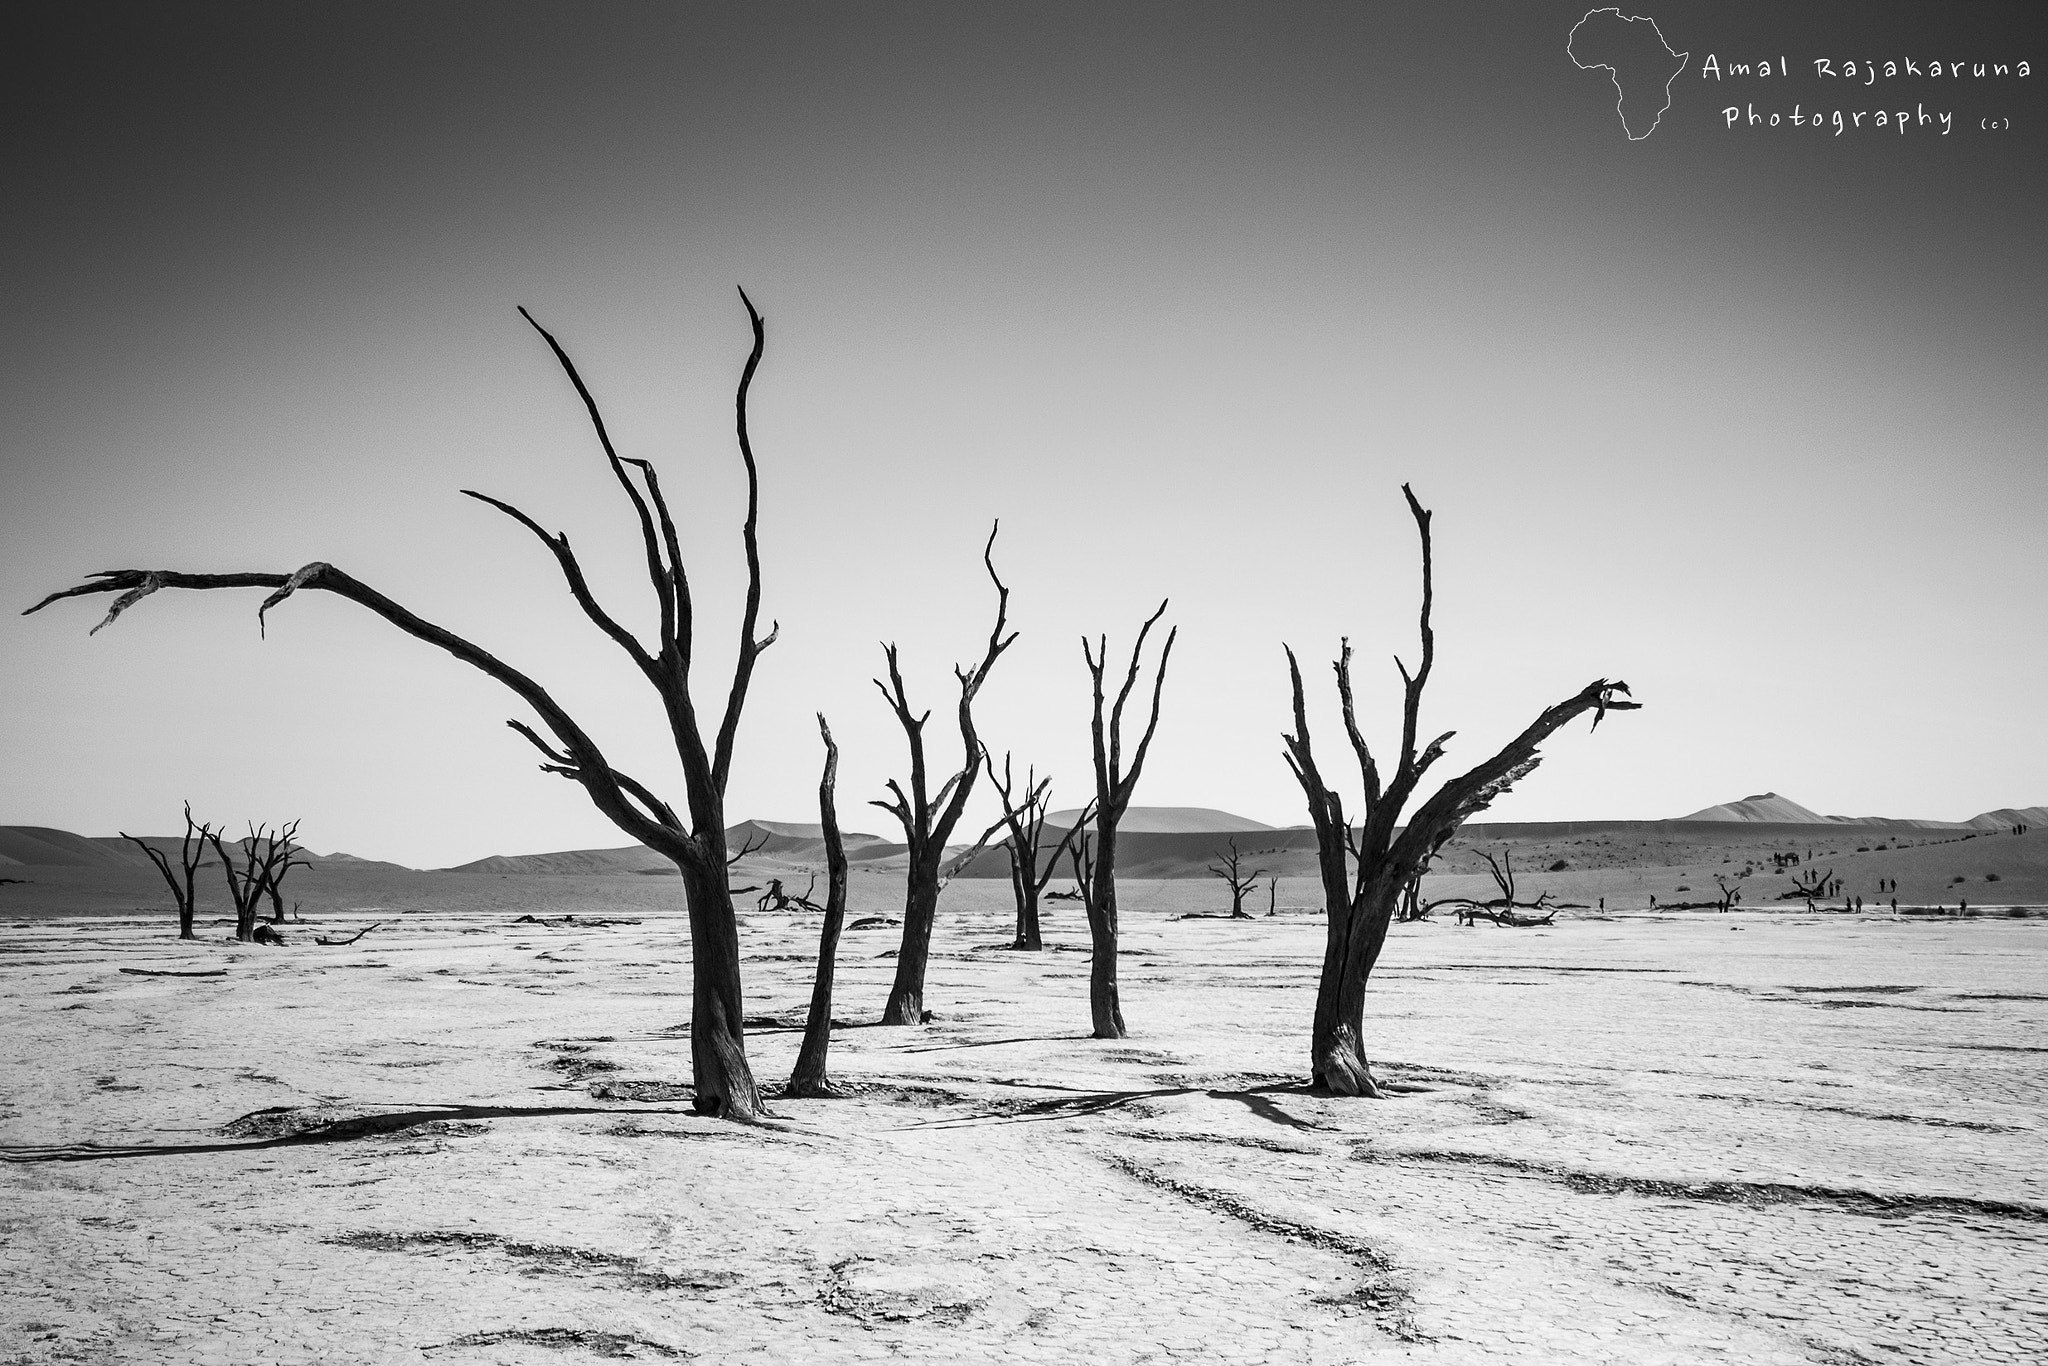 Photograph Deadvlei Trees, Namibia by Amal Rajakaruna on 500px